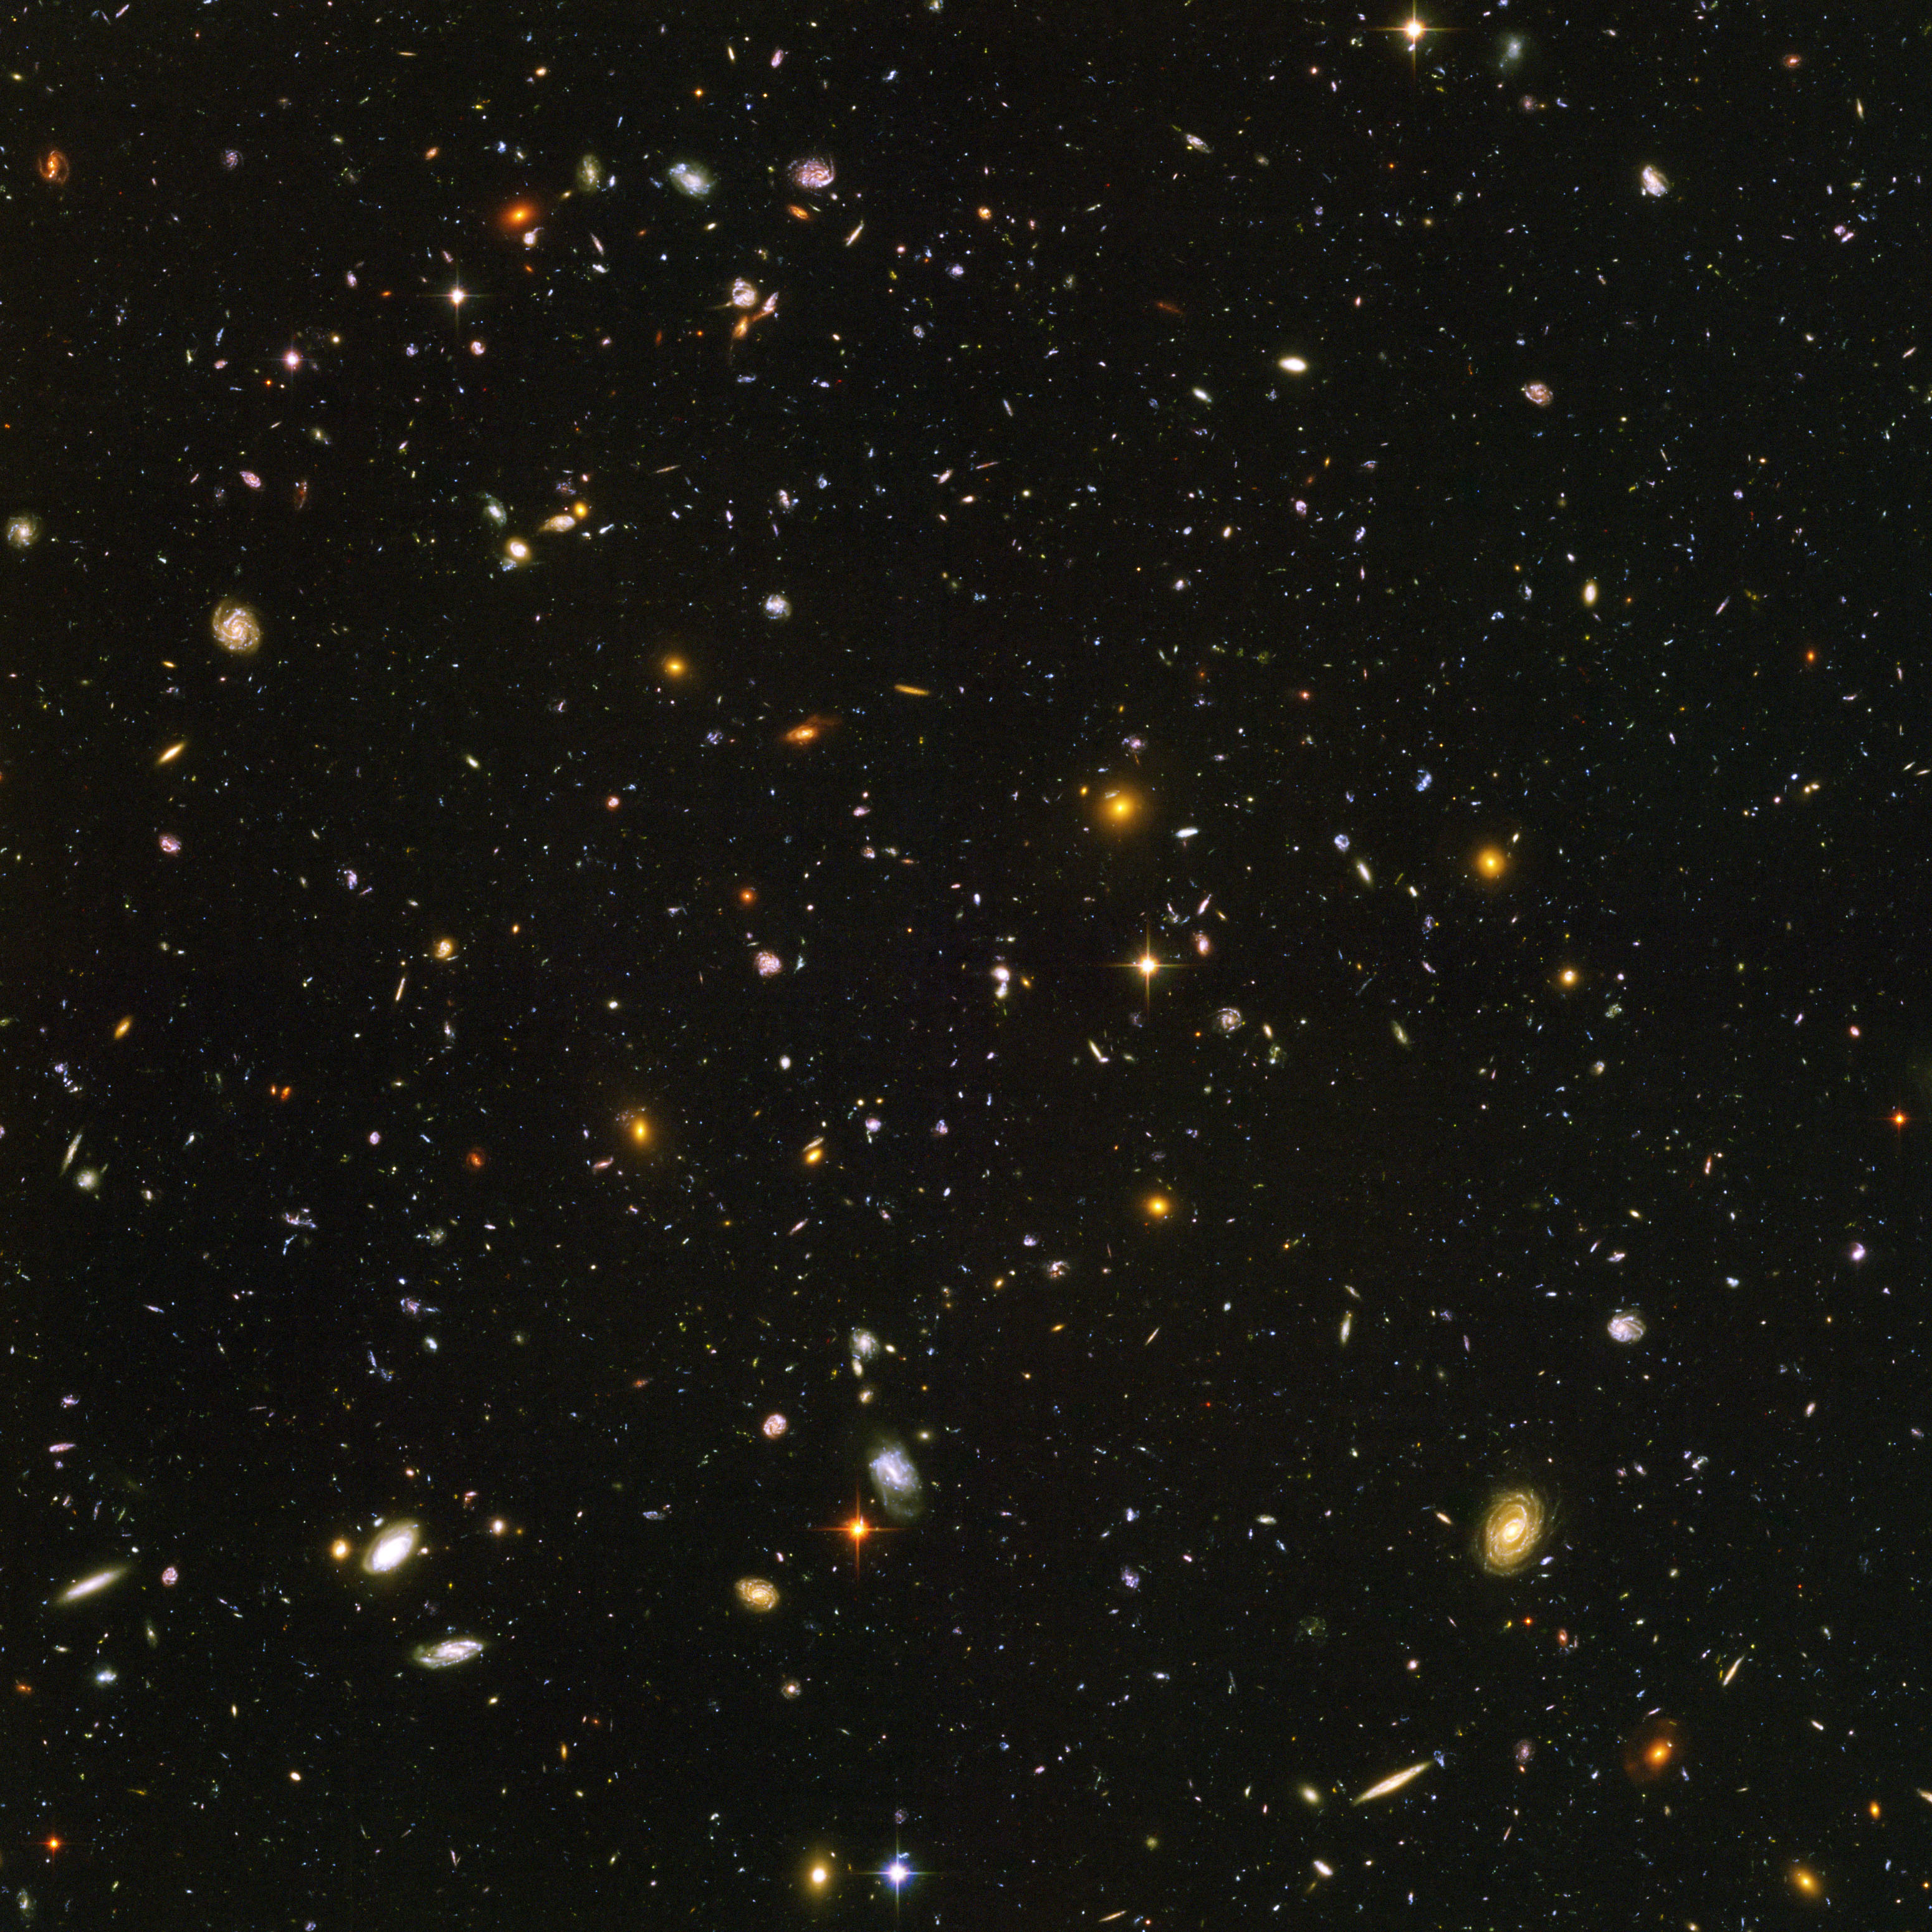 Hubble Ultra Deep Field (NASA image)